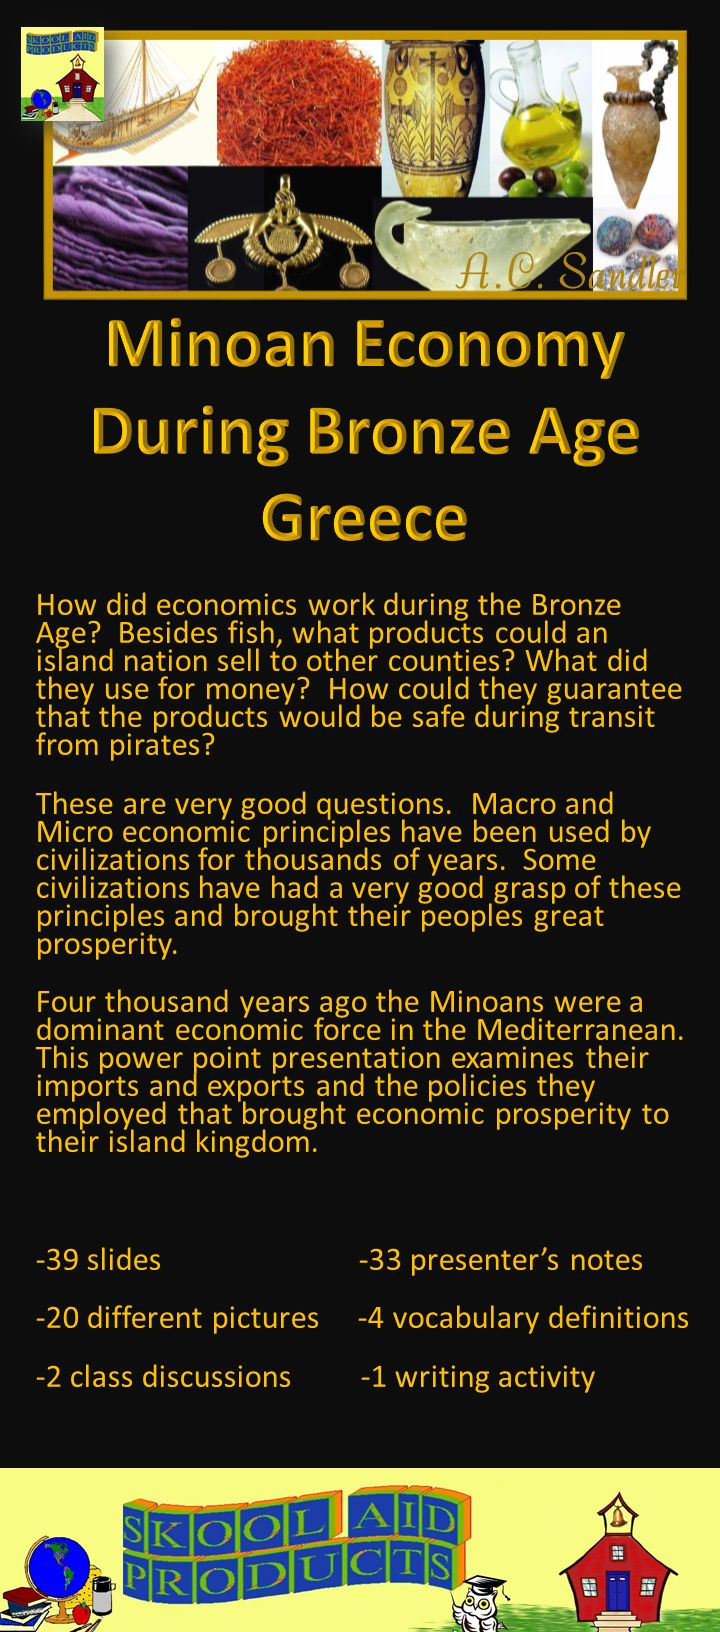 minoan economy the economy palace economy the minoan economy and civilization heavily depended on the cultivation of wheat, olives, grapes and barley several industries within the minoan society had been supported by the minoan economy such as, textiles, pottery and metal work industries minoan palaces became the centre of economic activity and life where manufacturing industries were based in palaces .